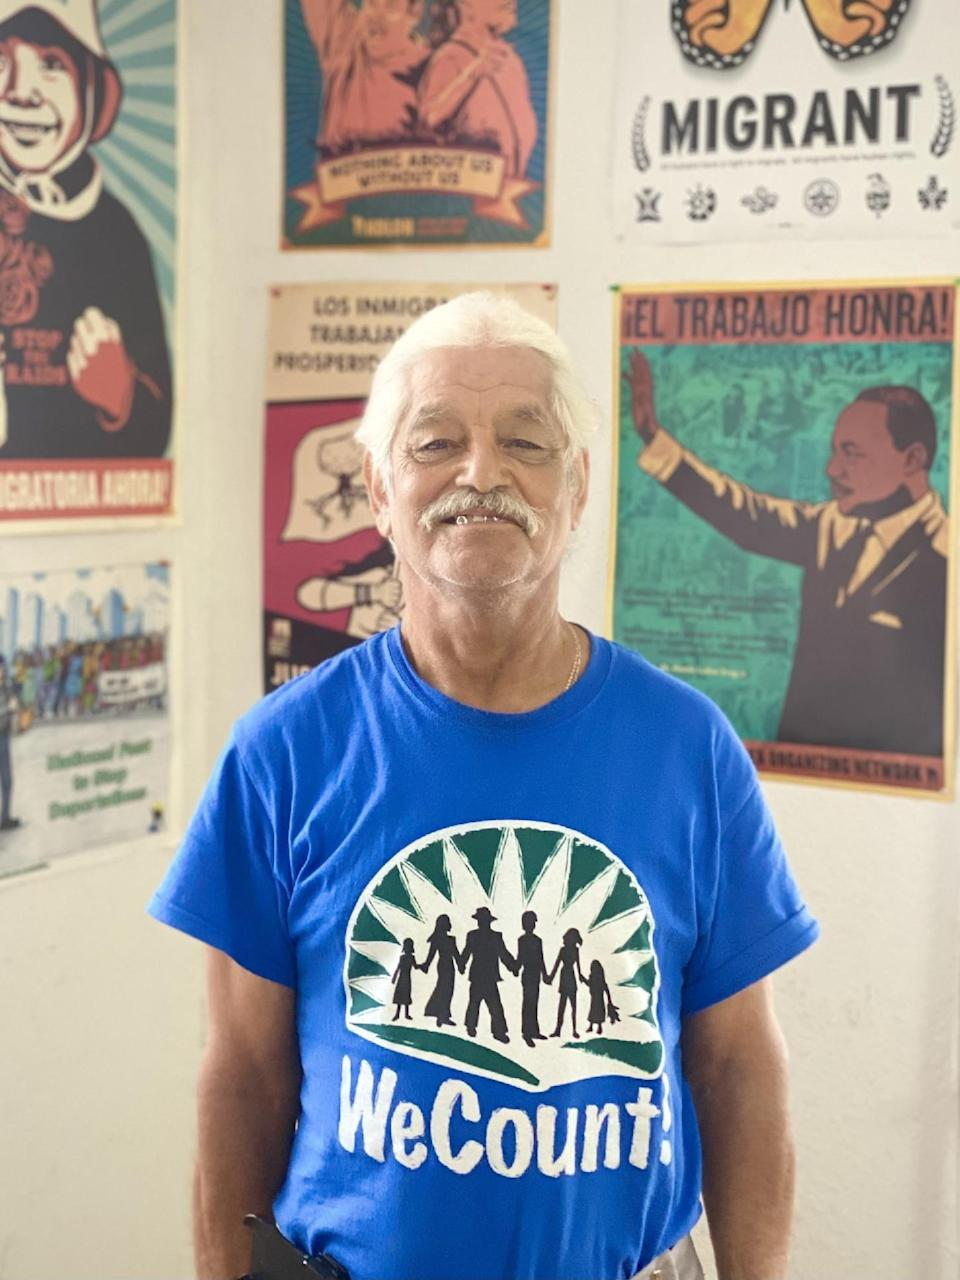 Jose Delgado, 72, is a Homestead, Florida farmworker whose health has suffered from heat. He's an advocate with WeCount, a group for immigrant rights.